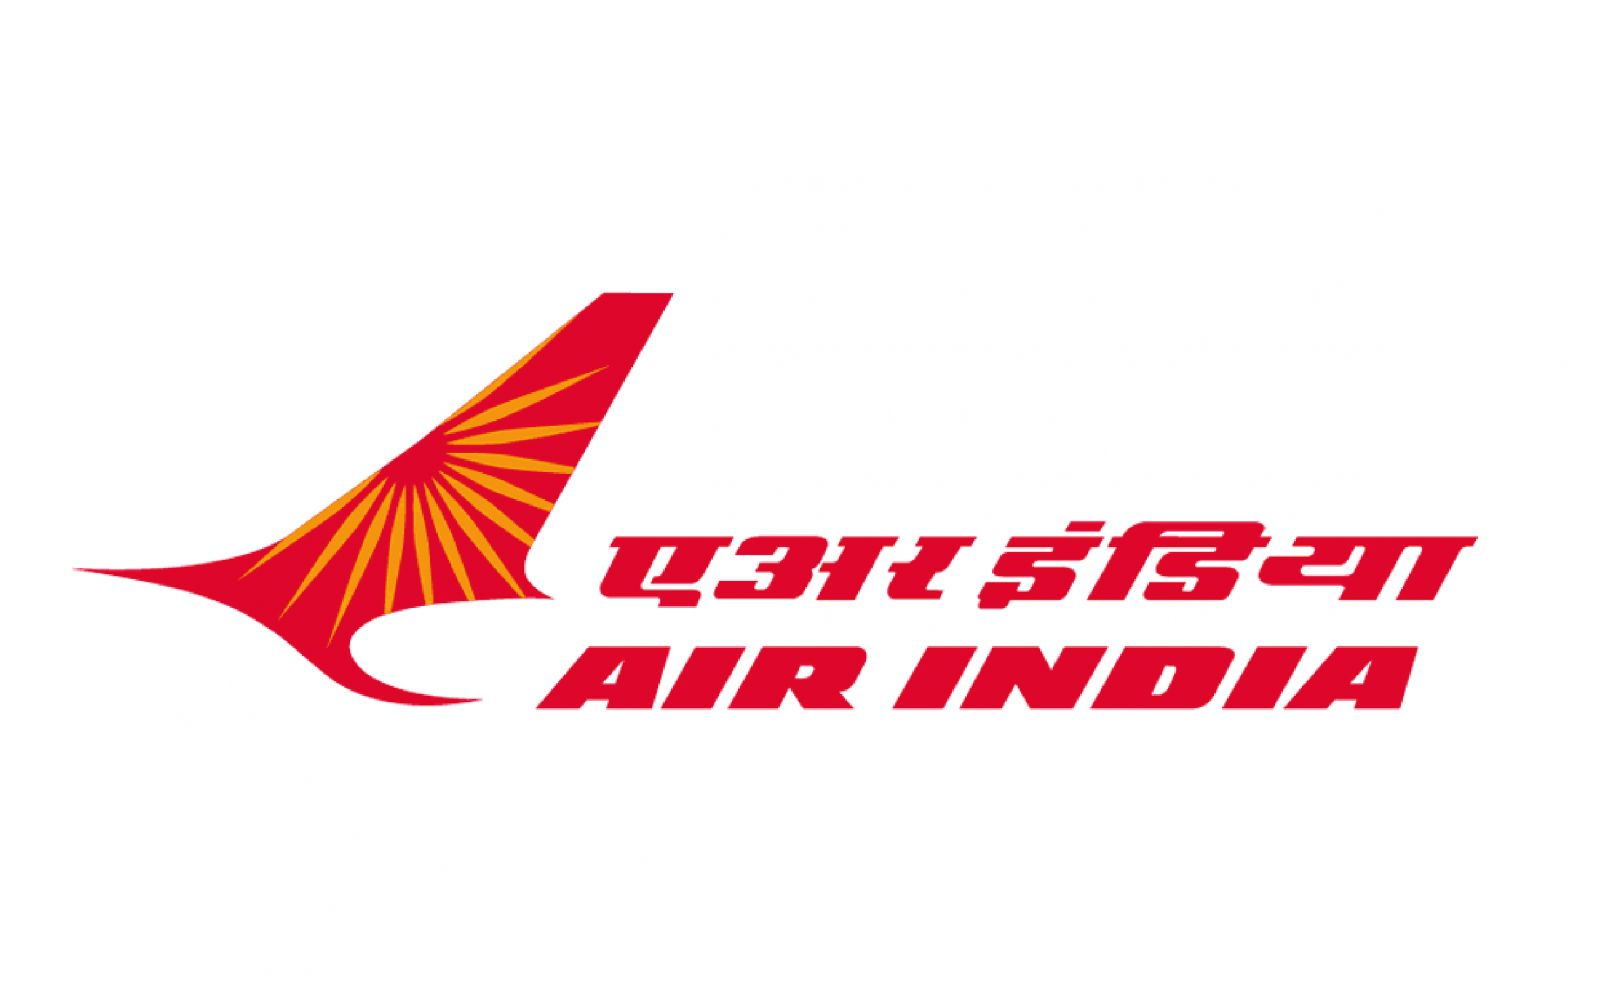 The ICTS Team welcomes Air India at Dublin Airport